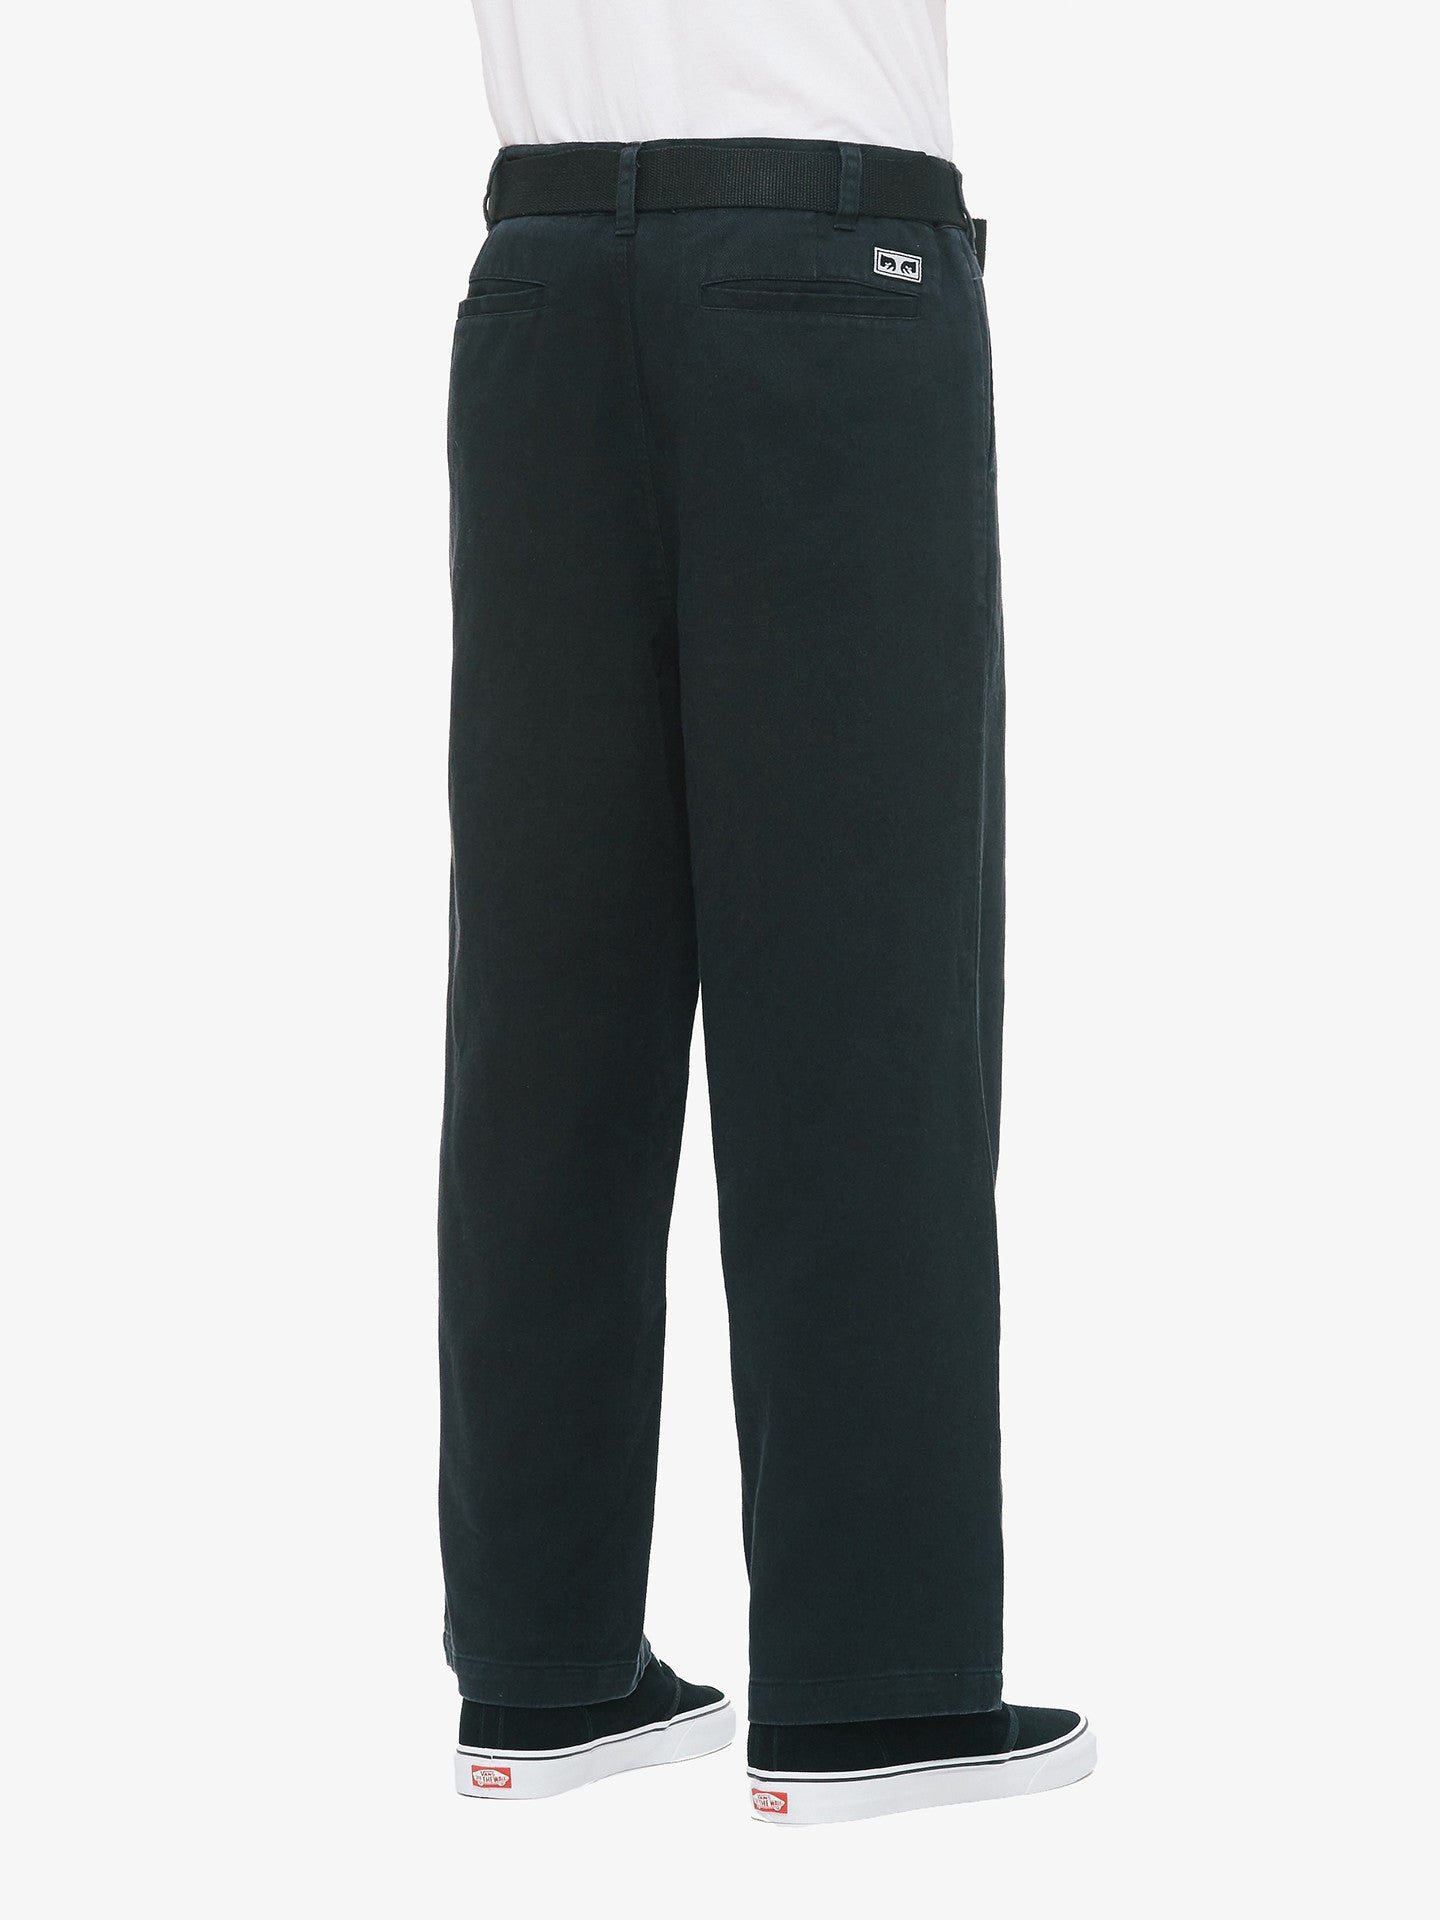 OBEY - Loiter Big Fits Men's Pants, Black - The Giant Peach